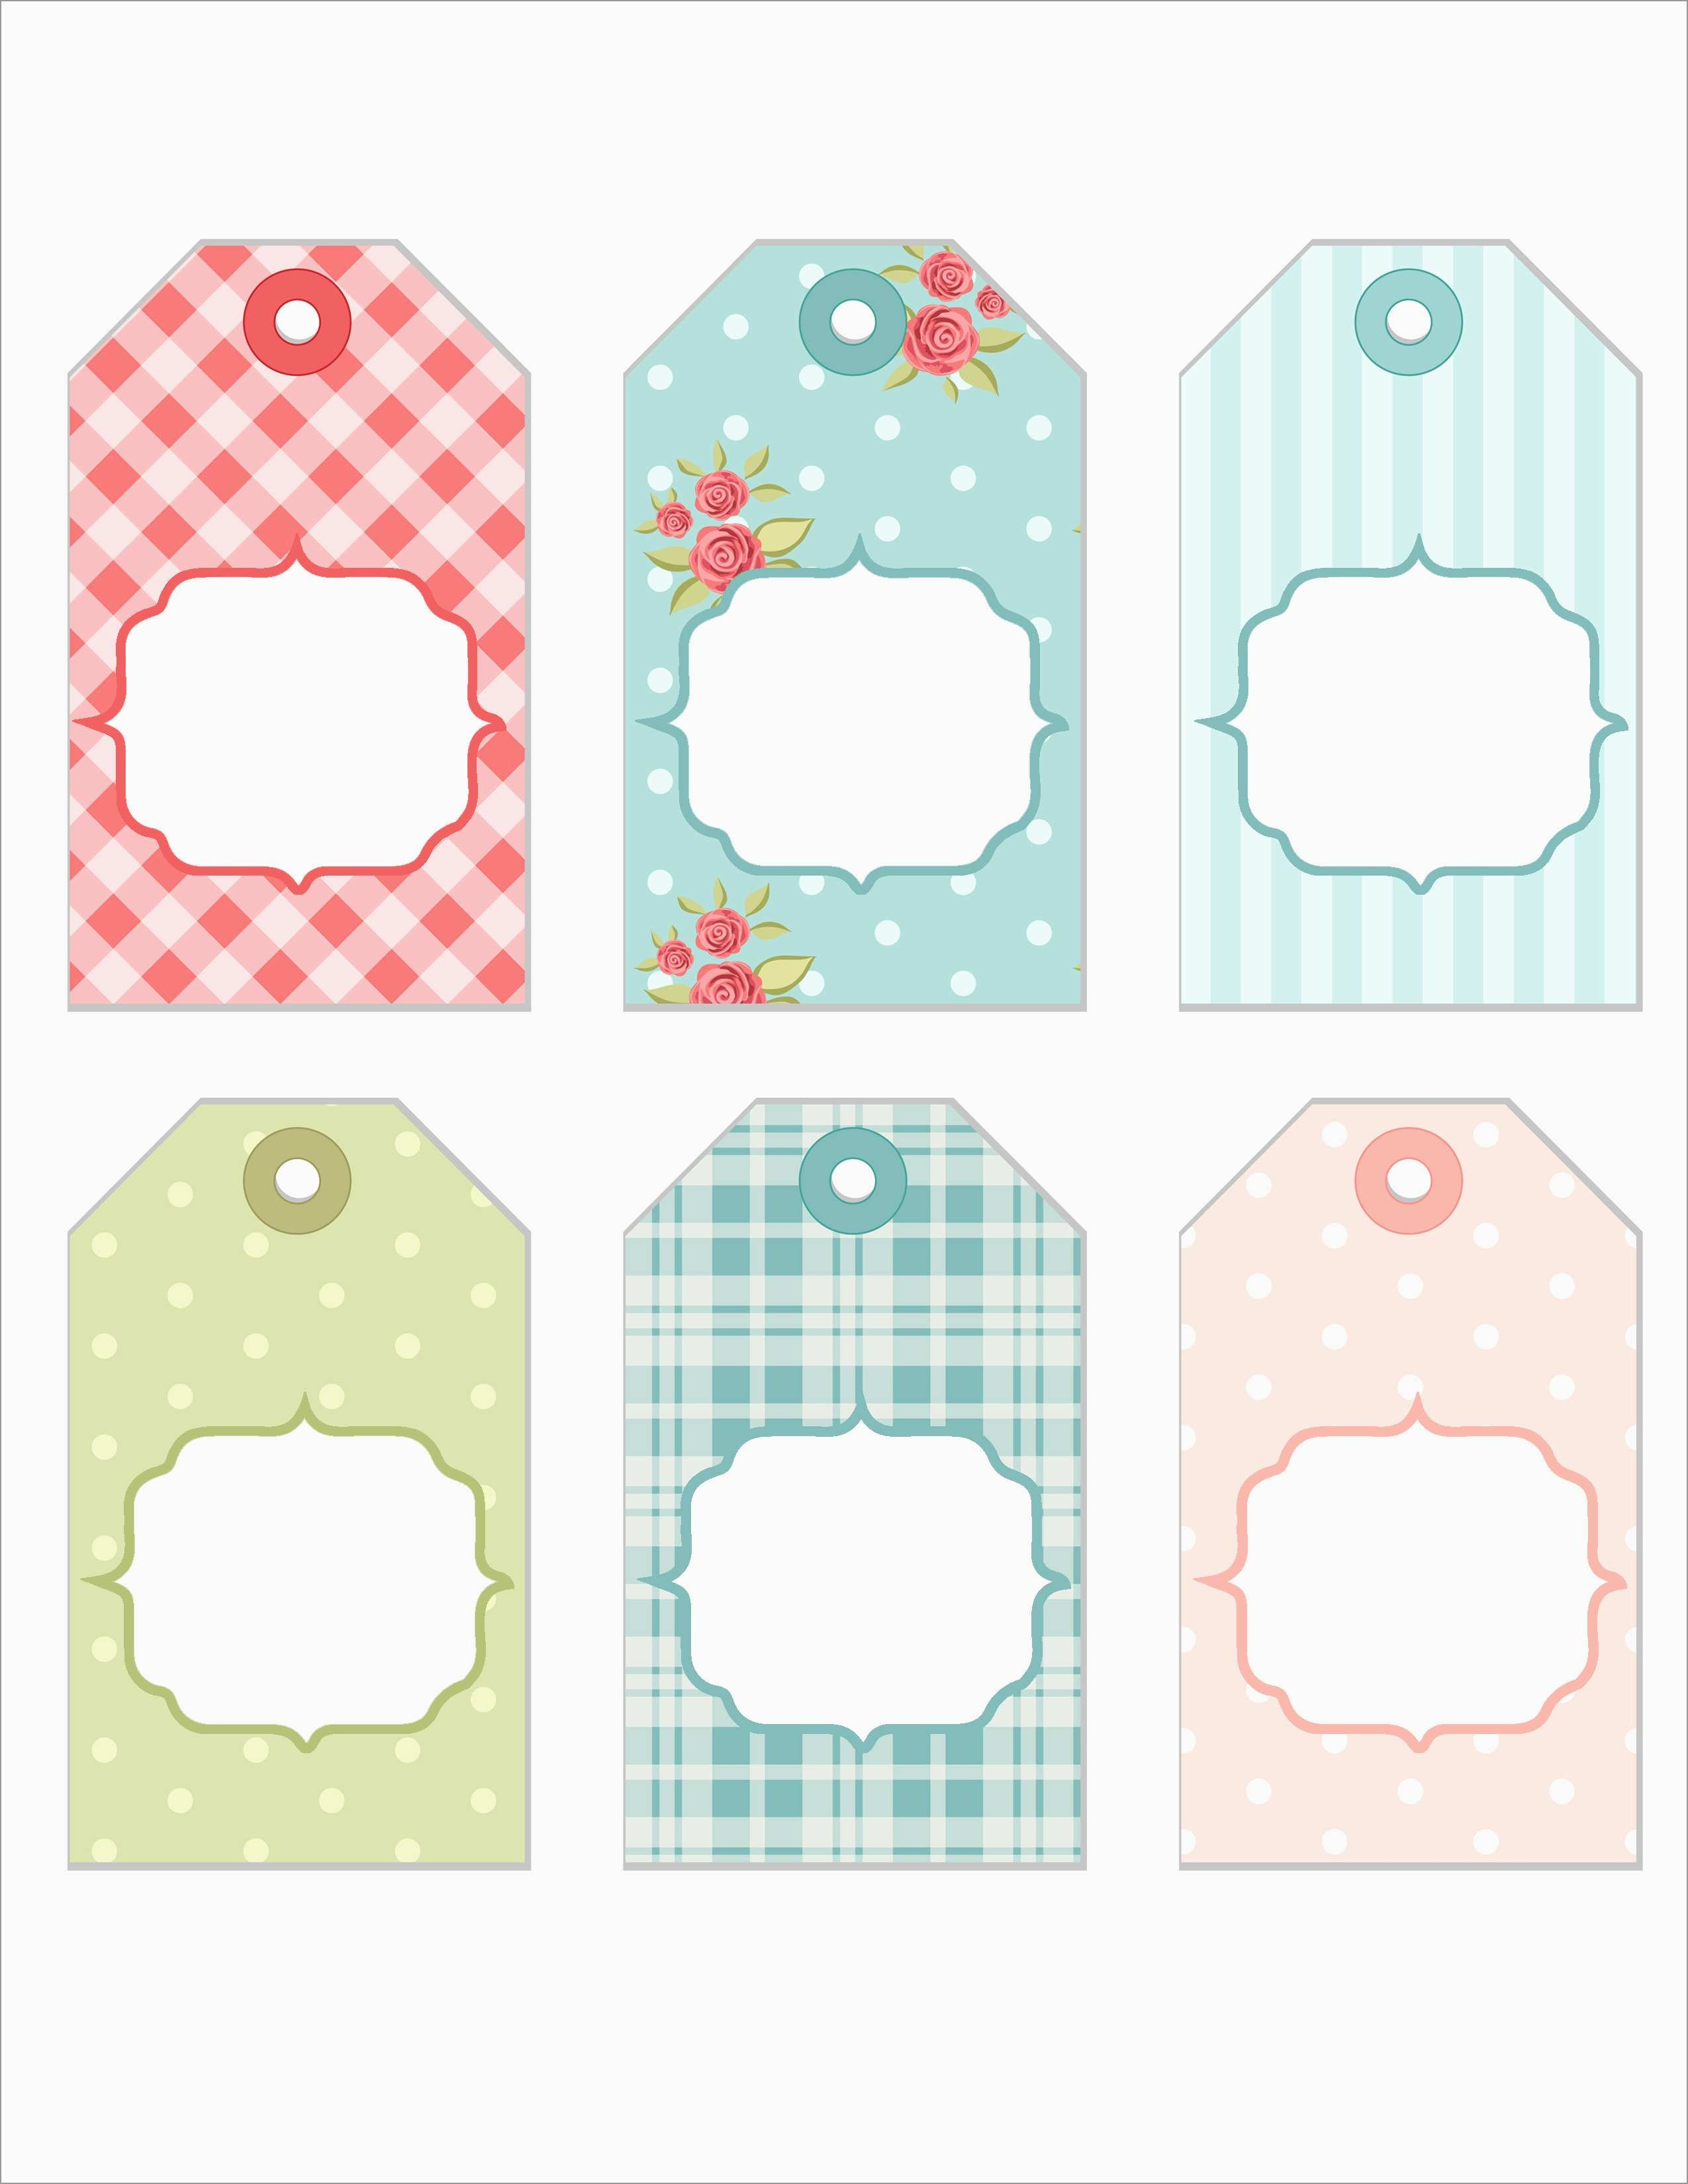 Bridal Shower Favor Tags Template Free Best Tea Party Thank You Tags - Free Printable Baby Shower Gift Tags